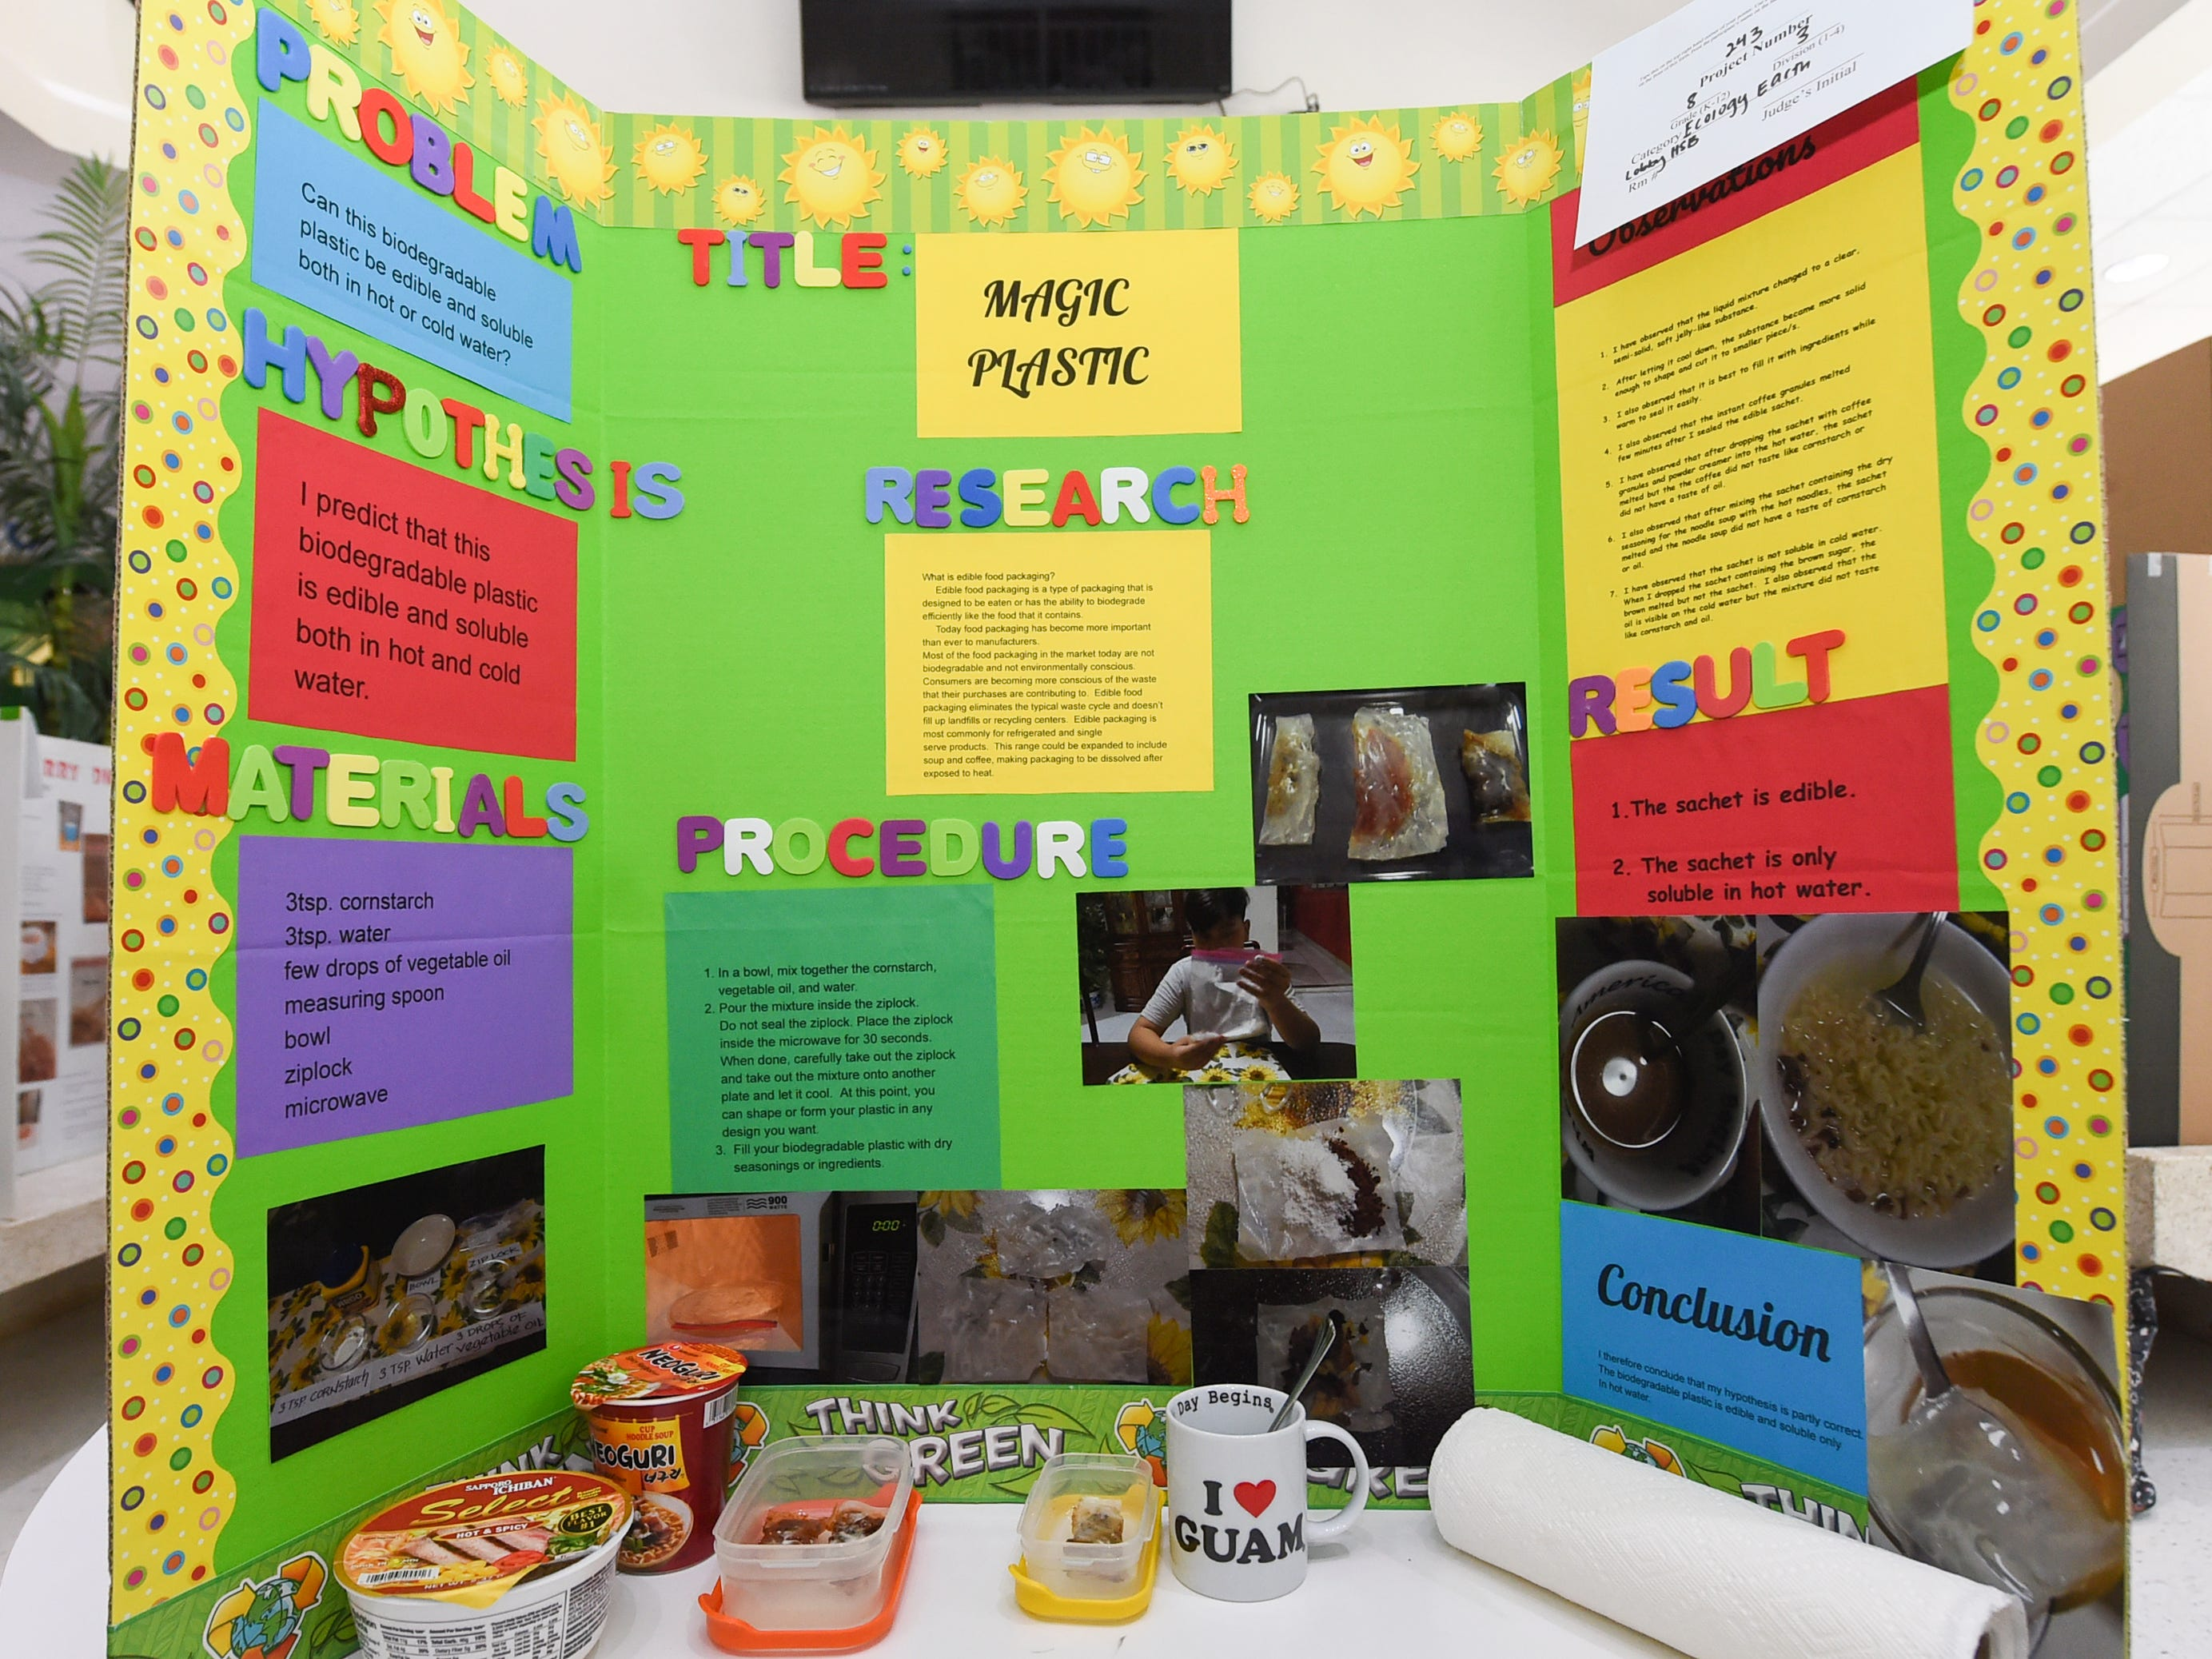 A science project by Joshua Valencia, 13, during the 41st Annual Islandwide Science Fair at the University of Guam in Mangilao, May 11, 2019.